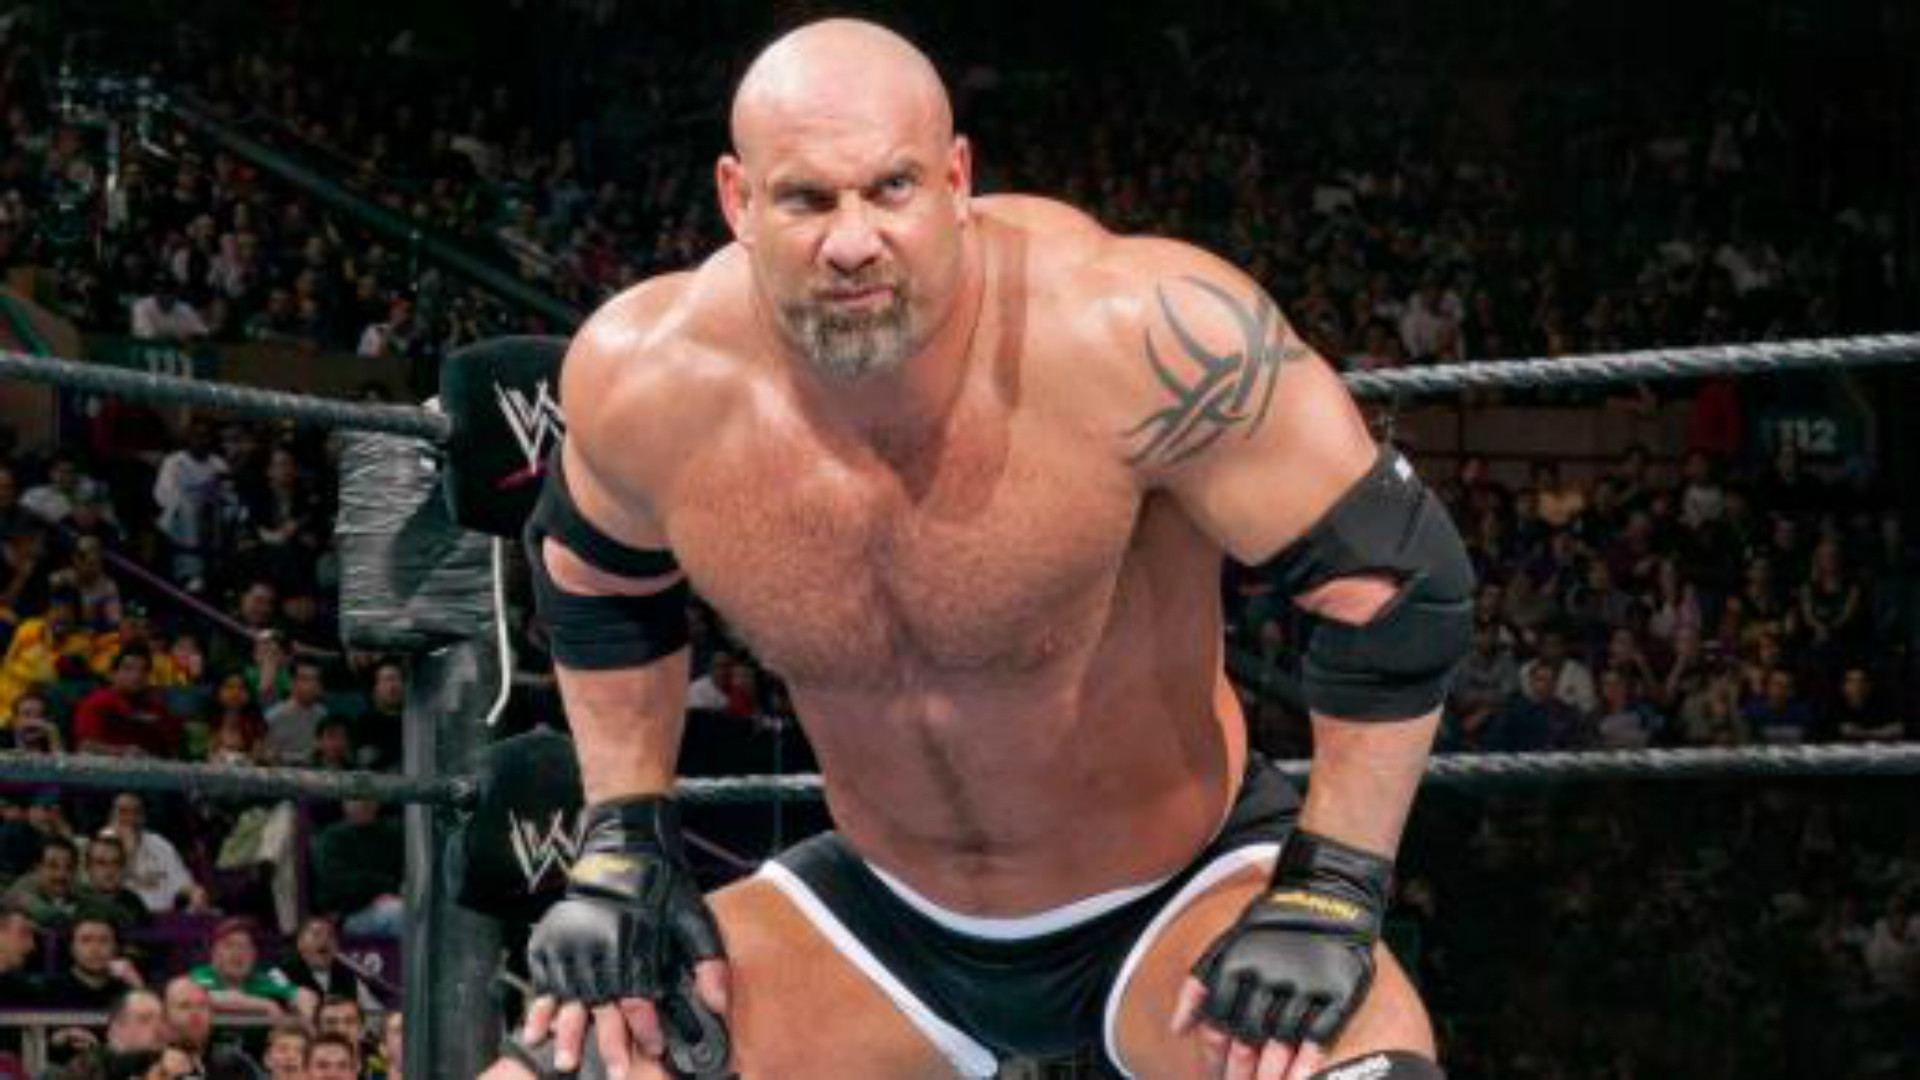 1920x1080 WWE Survivor Series: Can Goldberg cope with Brock Lesnar?